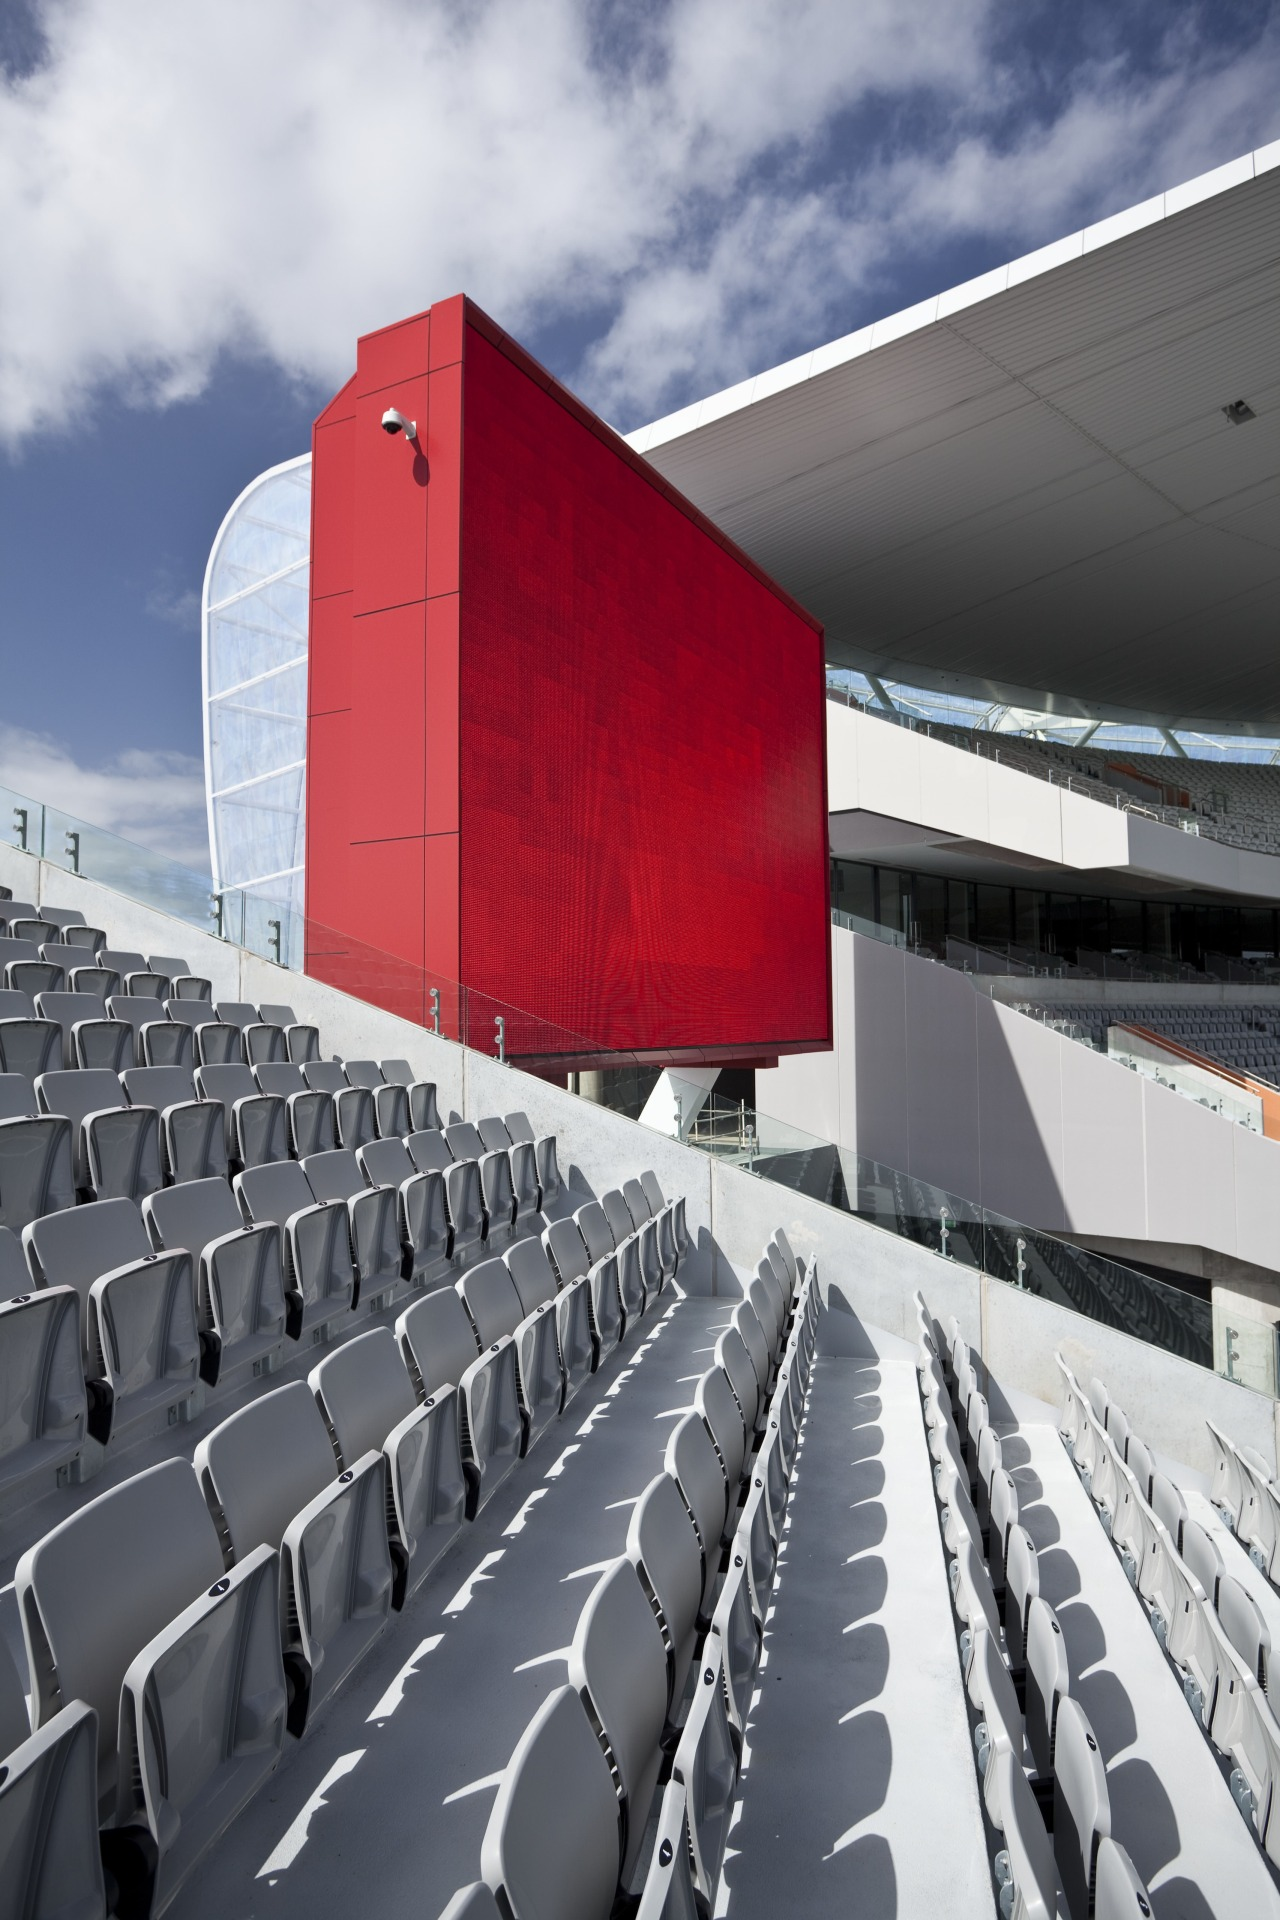 View of the stands at Eden Park which architecture, building, line, product design, sport venue, stadium, structure, gray